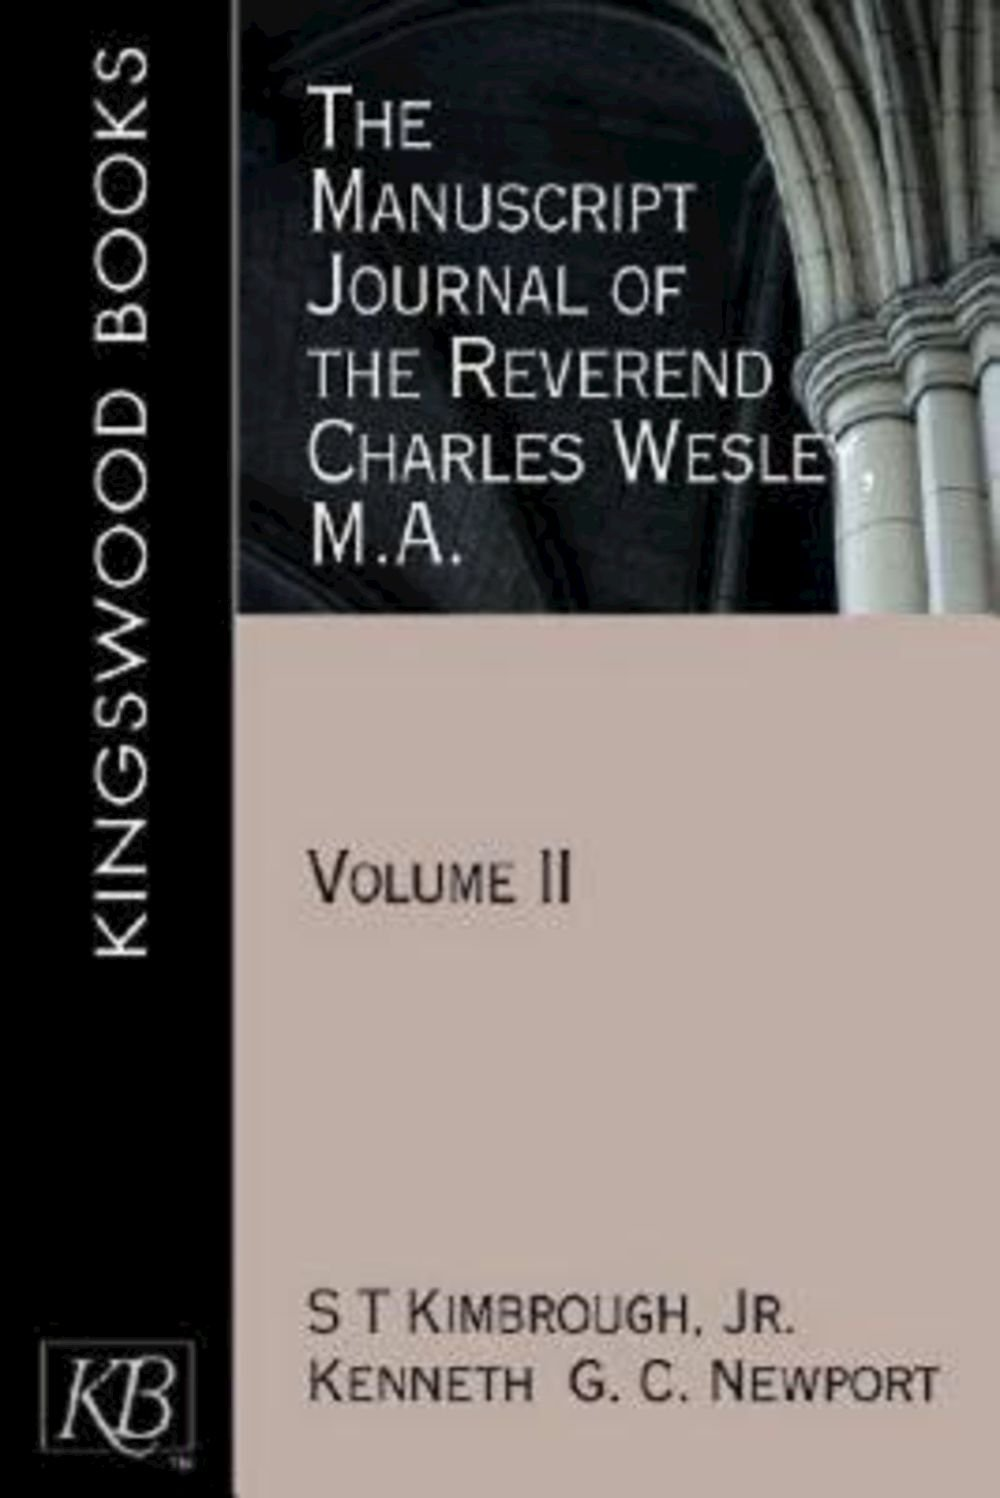 The Manuscript Journal of the Reverend Charles Wesley, M.A.: Volume II (Kingswood)